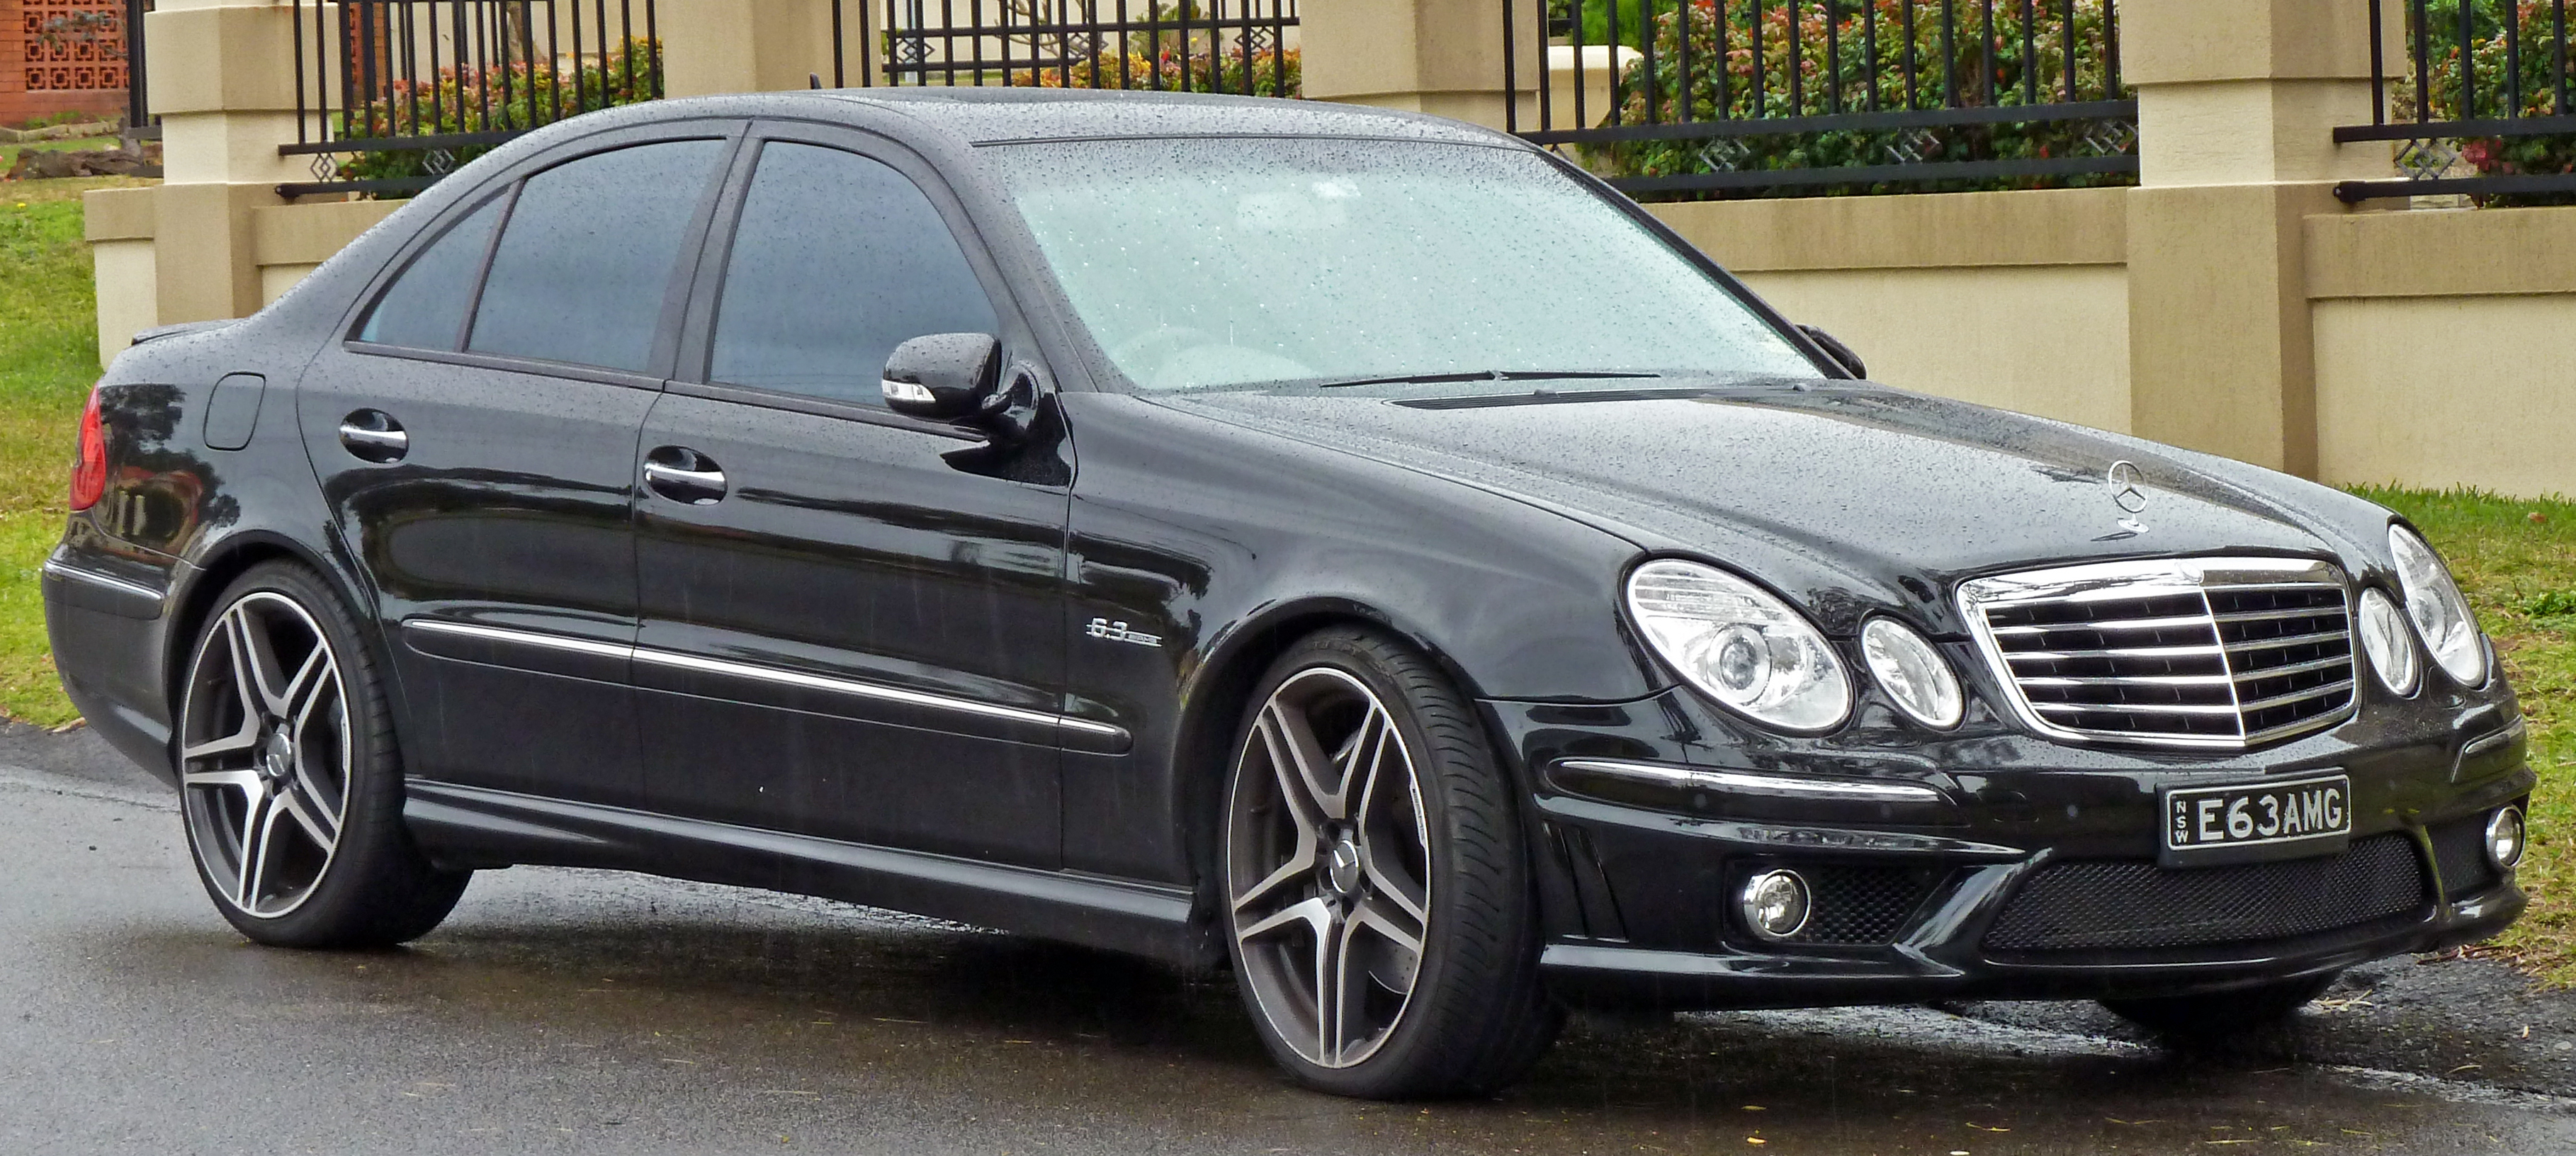 file 2006 2009 mercedes benz e 63 amg w211 sedan wikipedia. Black Bedroom Furniture Sets. Home Design Ideas